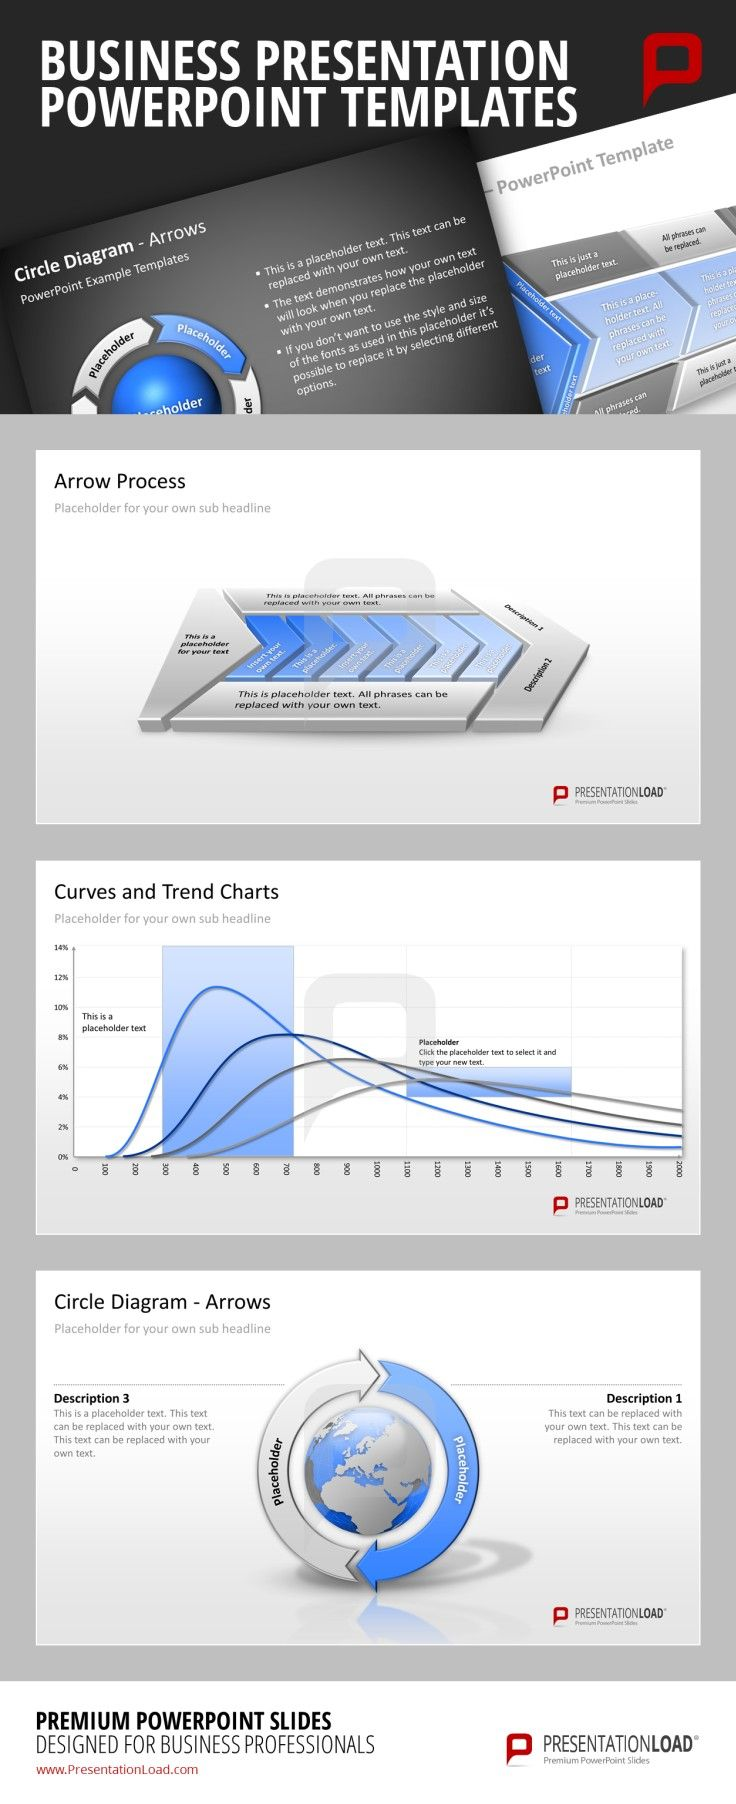 27 best BUSINESS // POWERPOINT TEMPLATES images on Pinterest ...